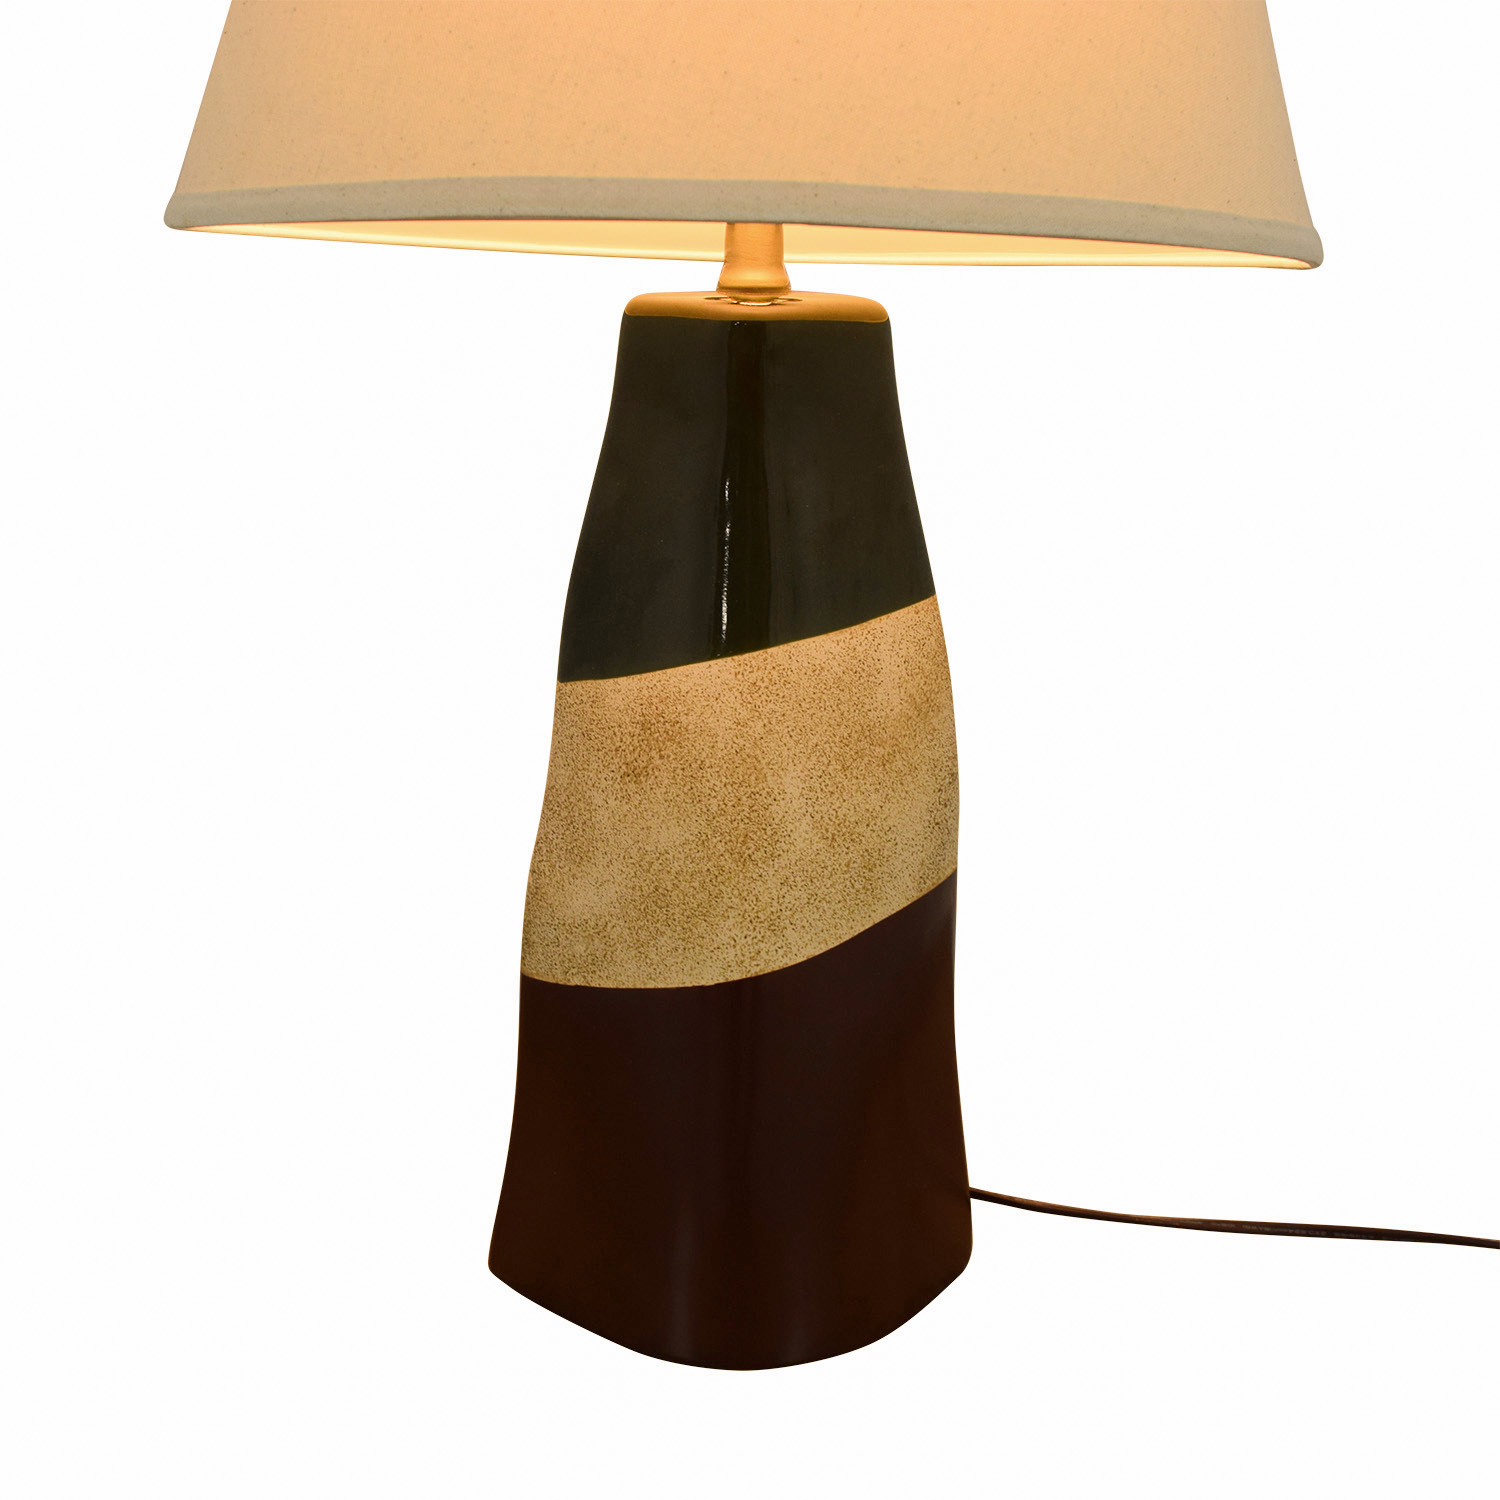 72 off brown green and beige ceramic table lamp decor brown green and beige ceramic table lamp nyc aloadofball Choice Image